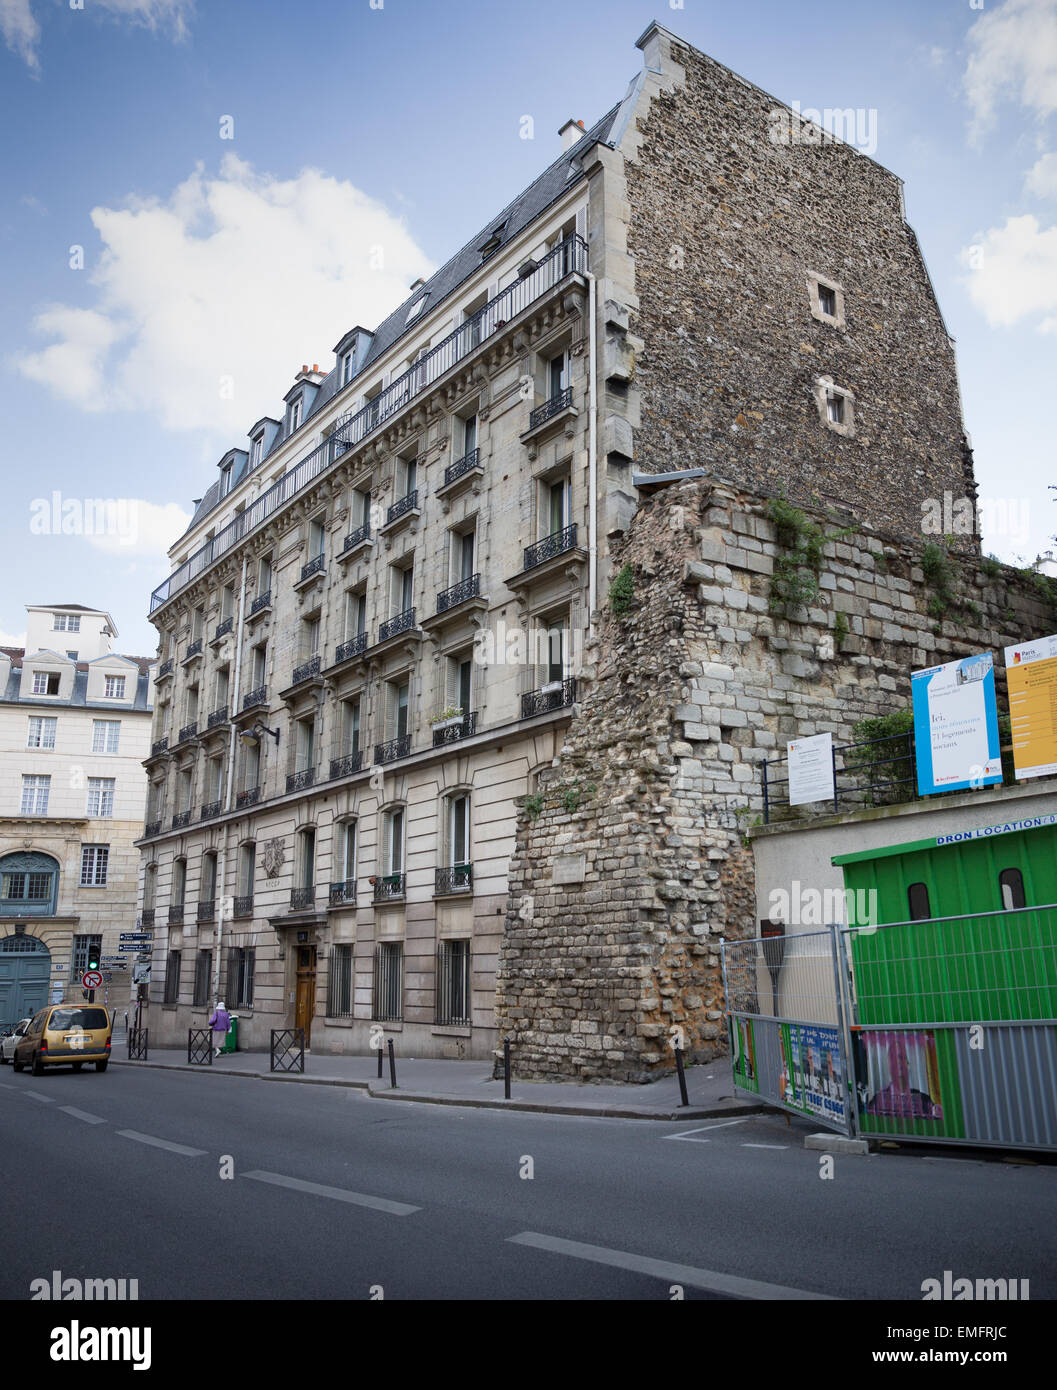 The Wall of Philip Augustus (1200-1215) next to an apartment building in the 5th arrondissement of Paris, France - Stock Image